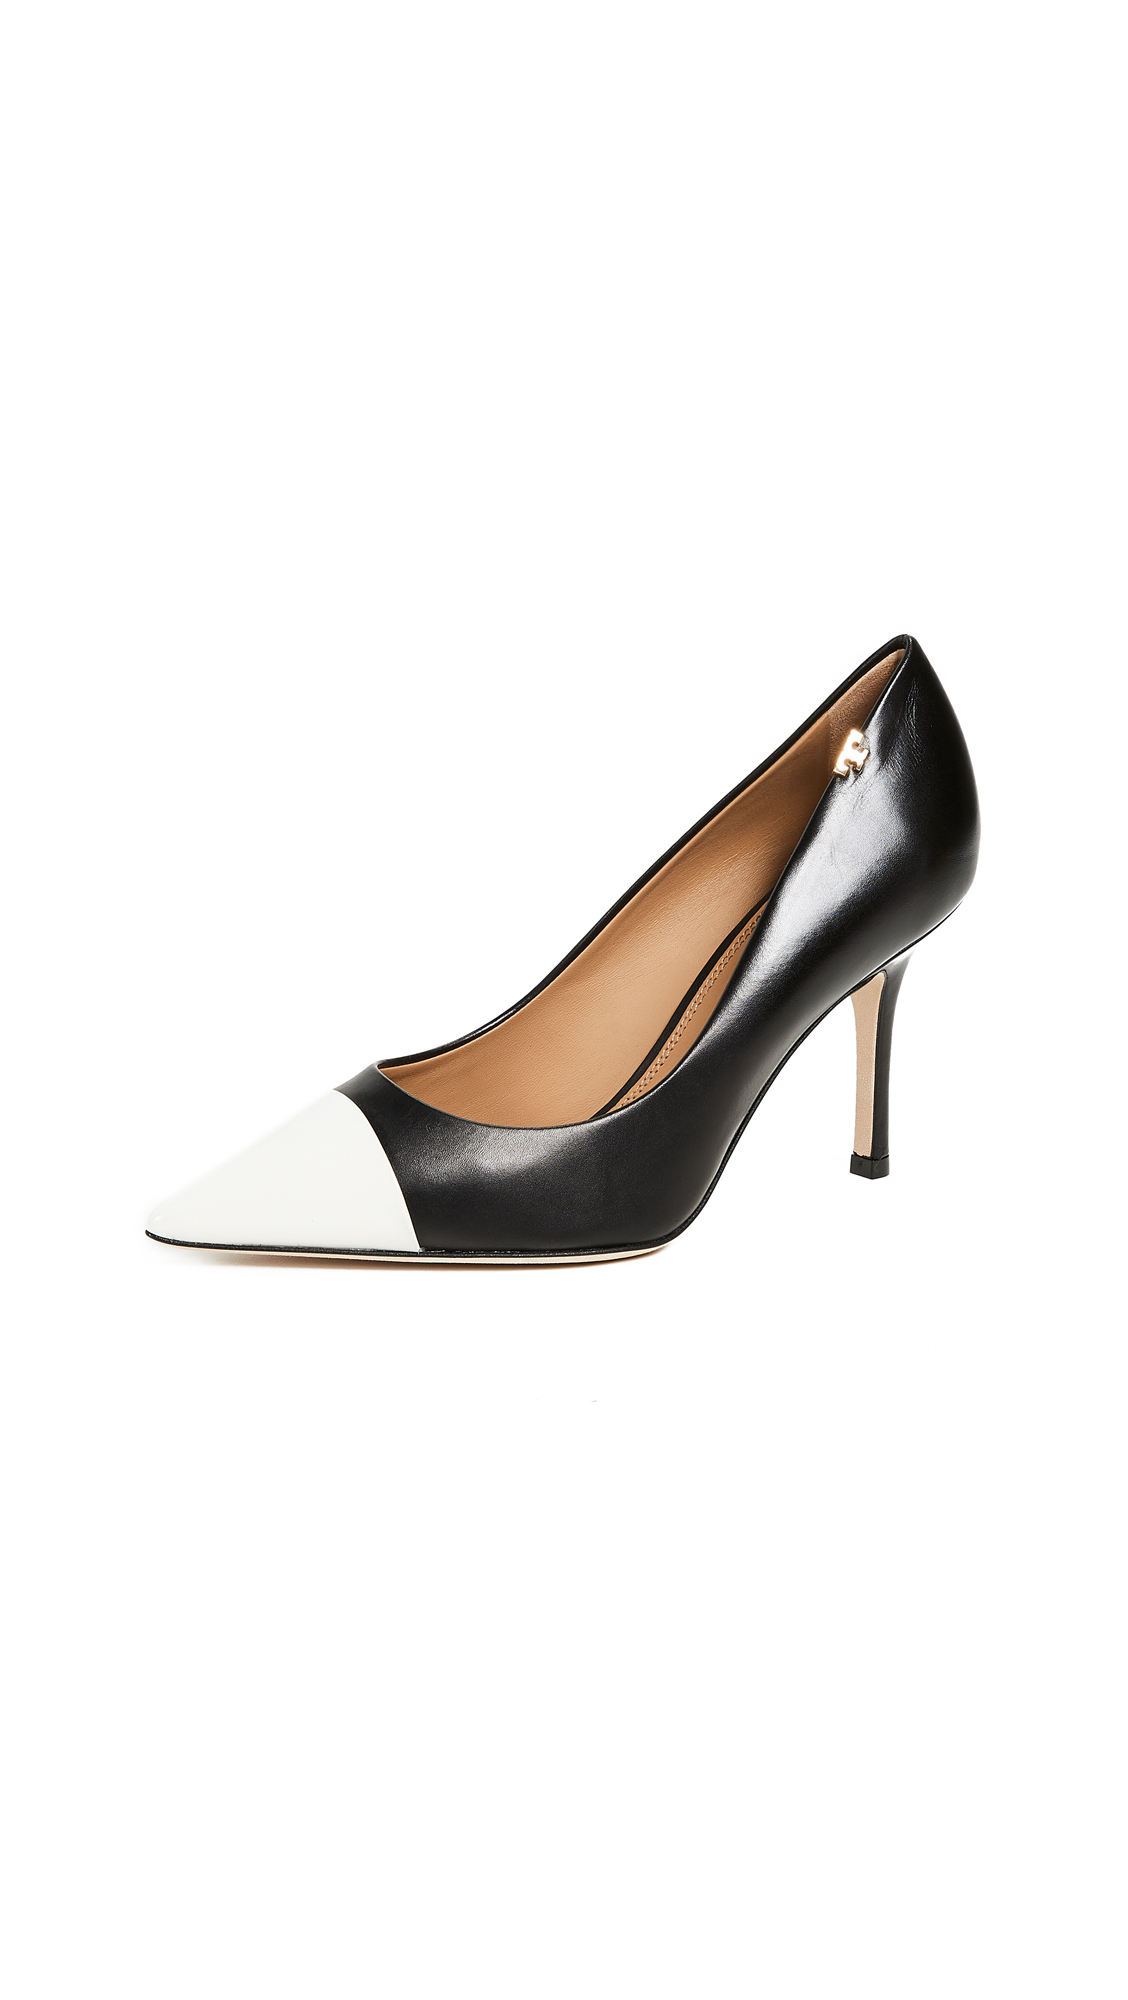 Tory Burch Penelope Cap Toe Pumps - Perfect Black/Italian Ivory